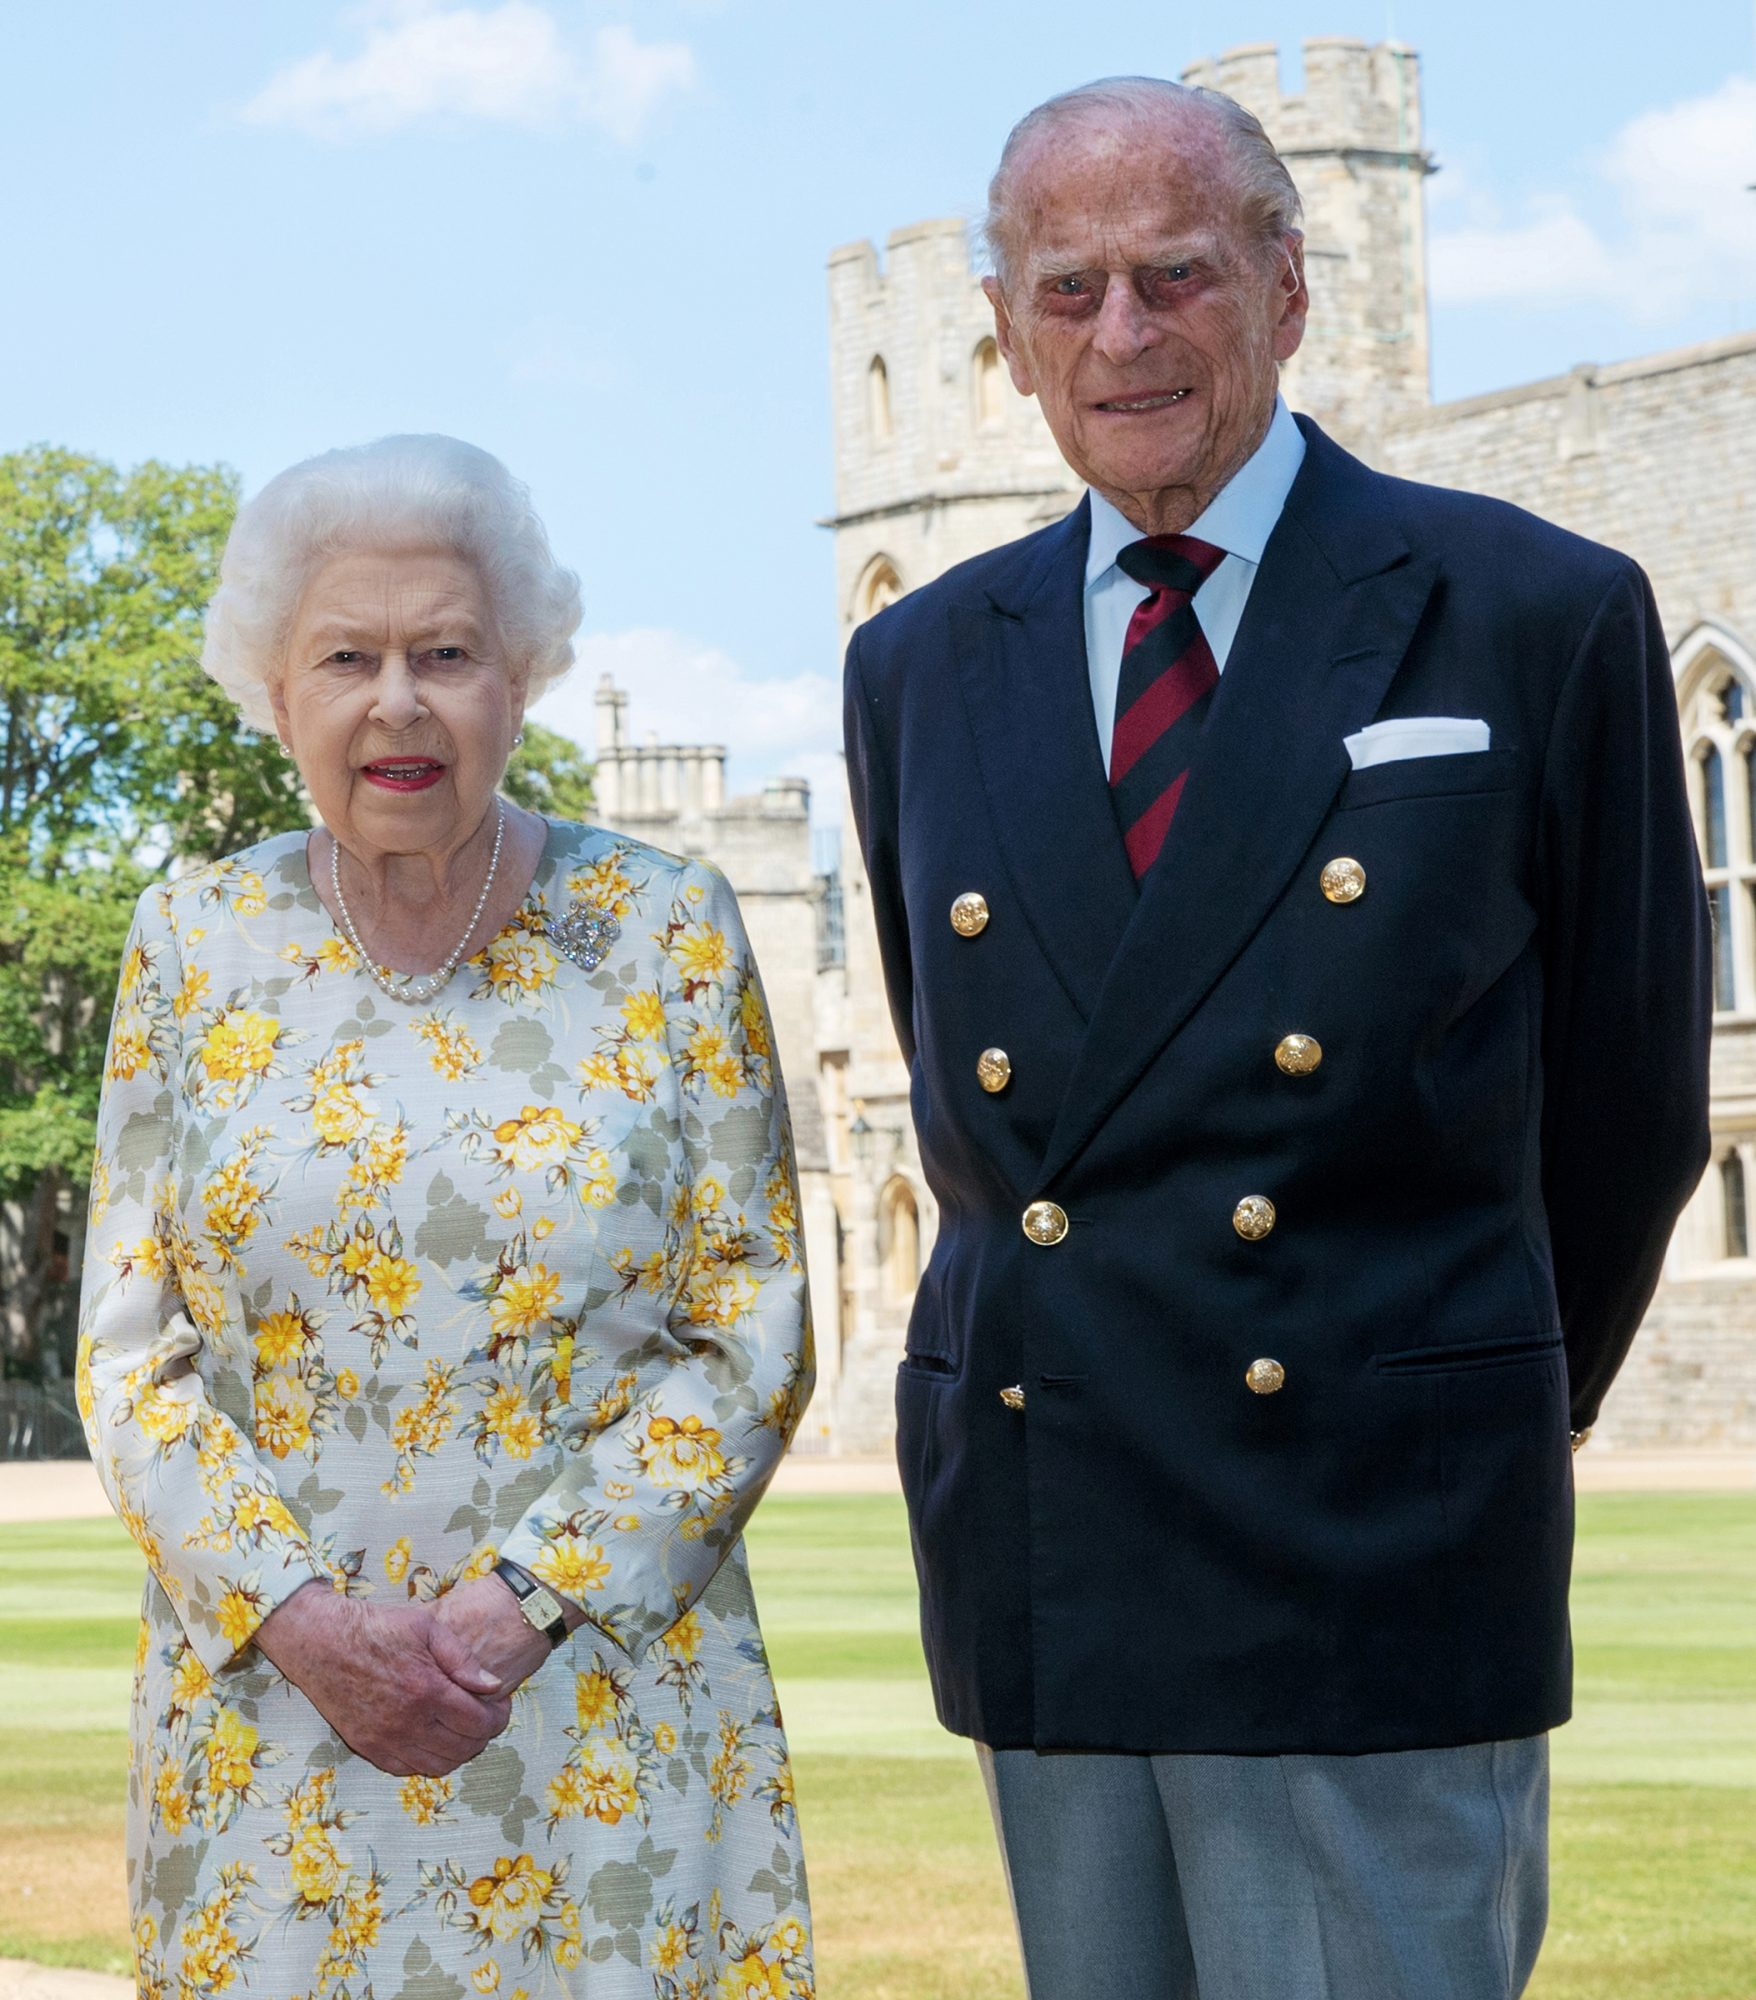 The Queen And The Duke Of Edinburgh Release A Photograph To Celebrate The Duke's 99th Birthday